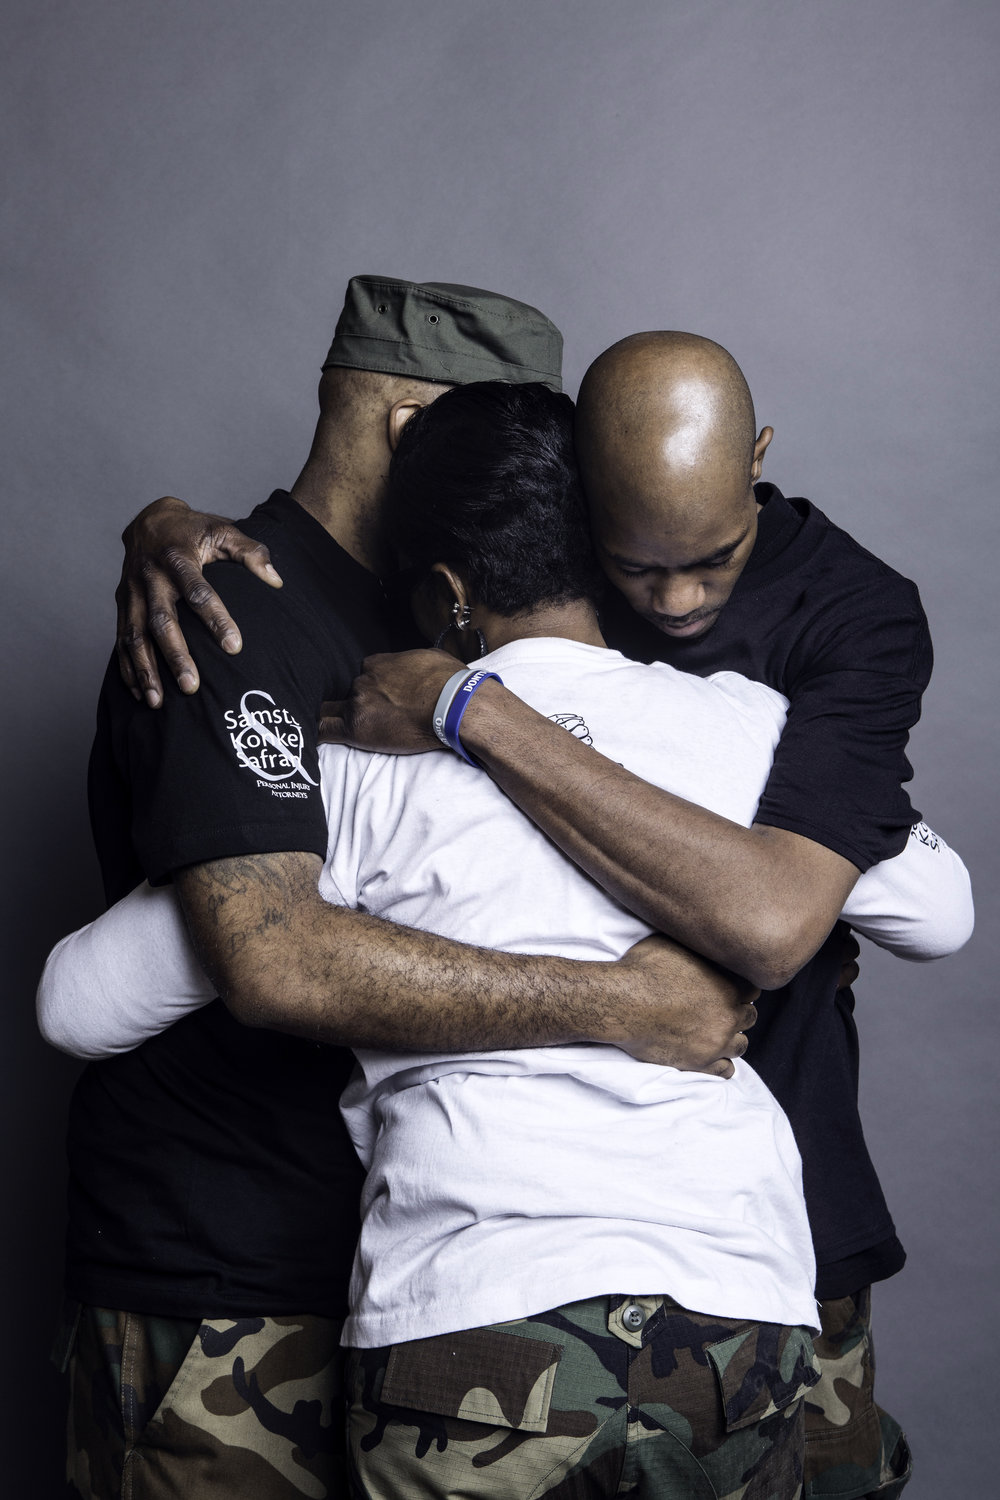 The Hamilton have made it through a lot of struggle by being there for one another. (Picture by Erik Ljung)